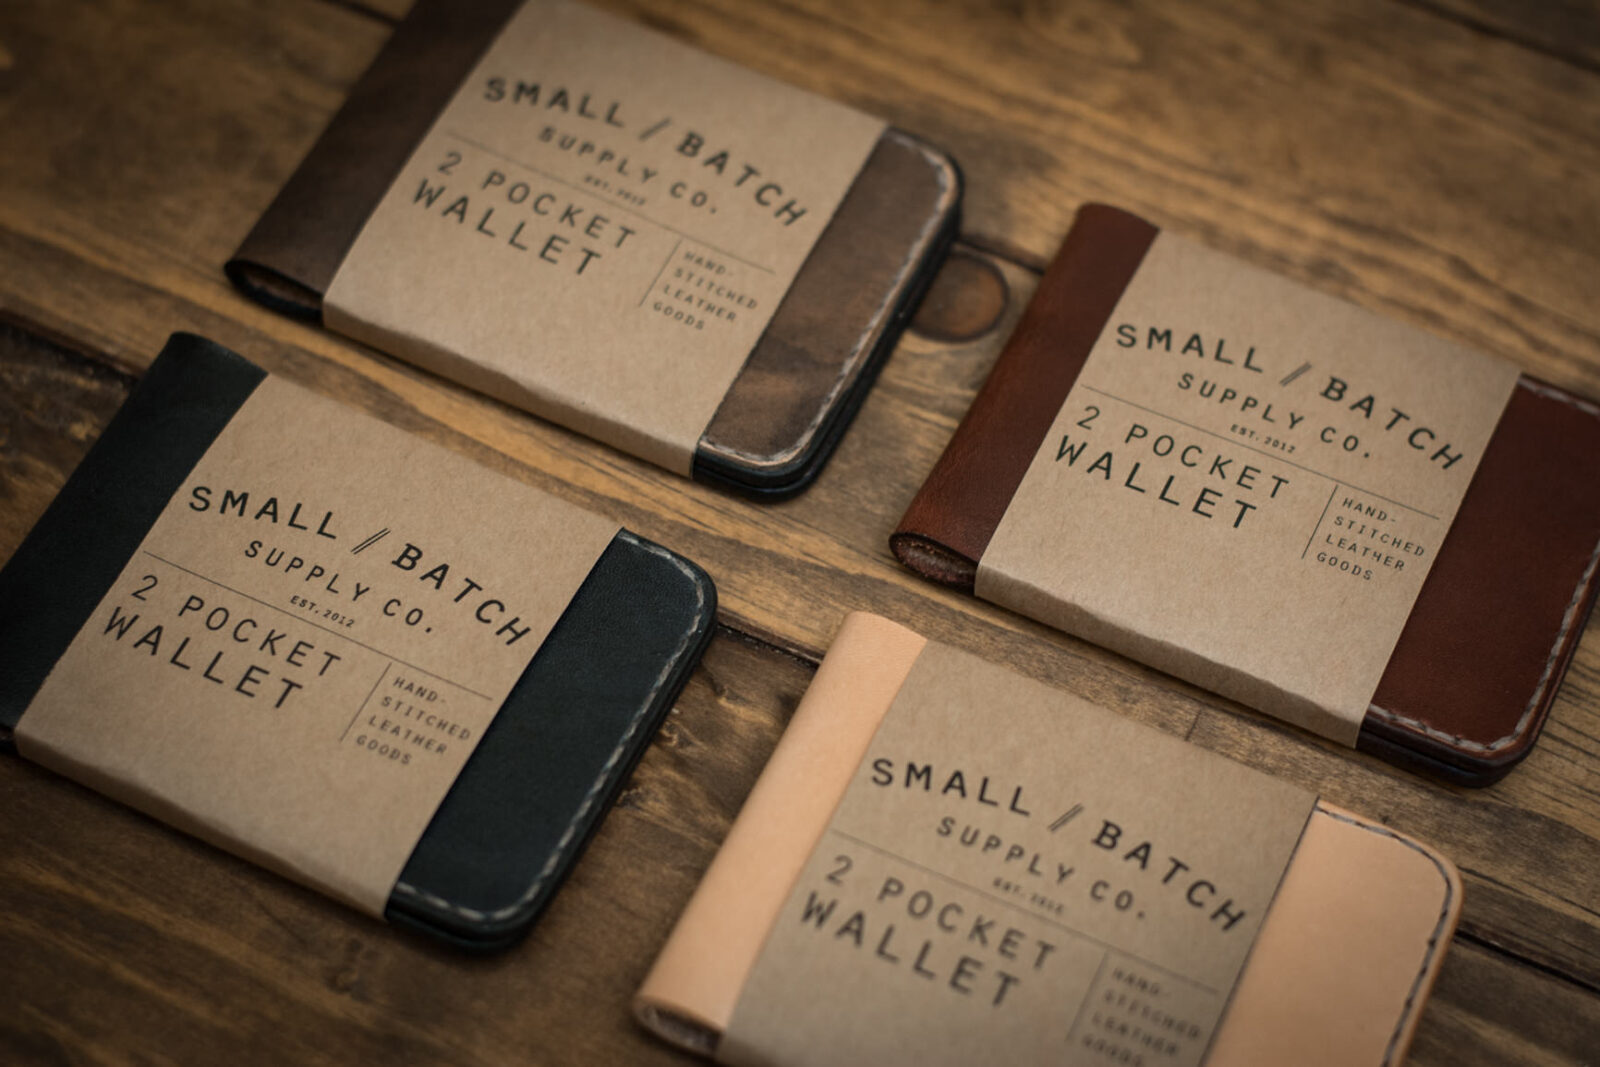 Small Batch Supply Co. 2 Pocket Wallet 8 1600x1067 - Small Batch Supply Co. 2 Pocket Wallet